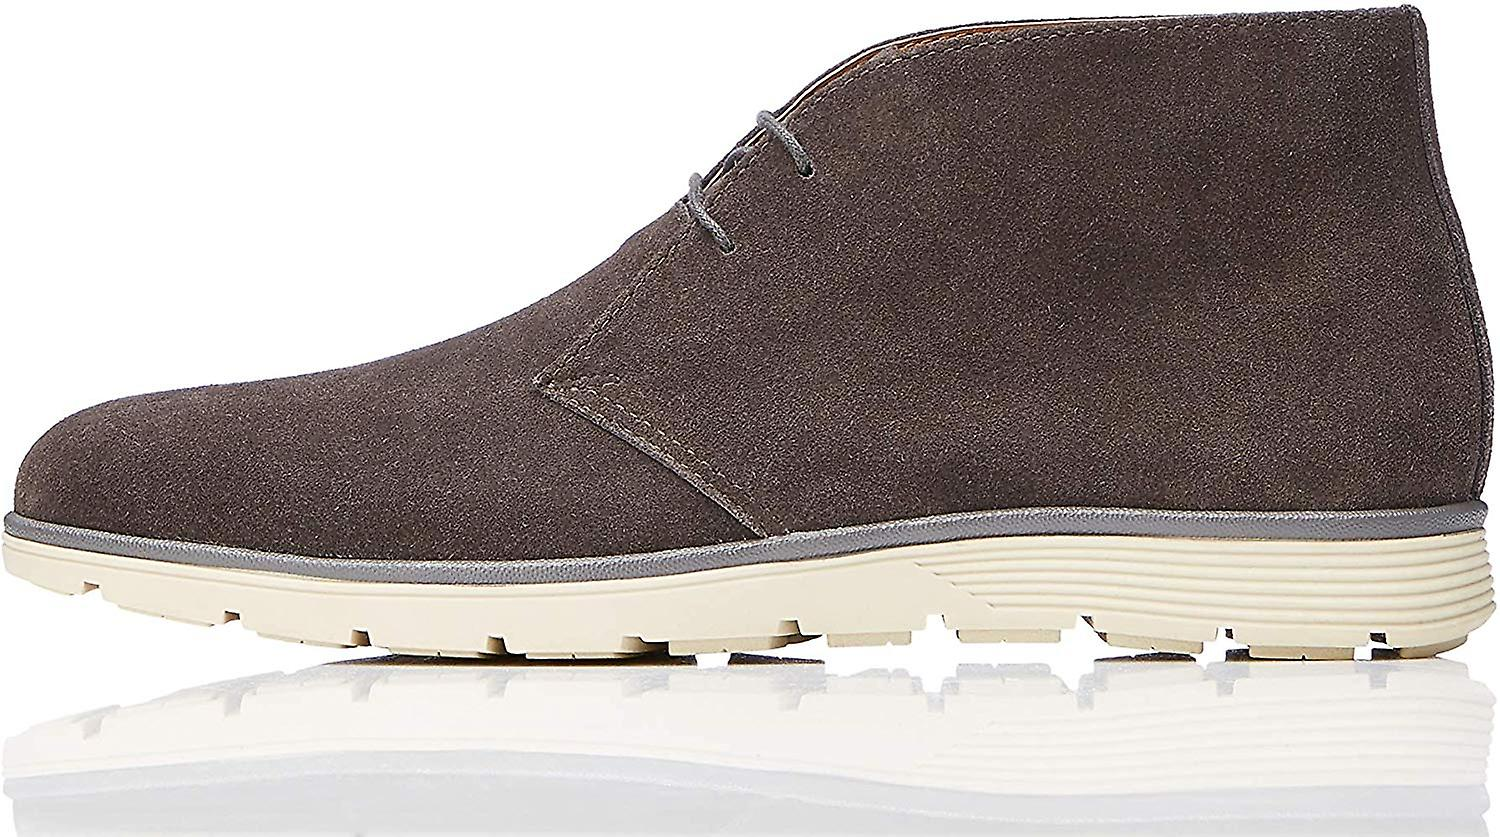 Marque - trouver. Men's Leather Ankle Length Chukka Boots Grey), US 10